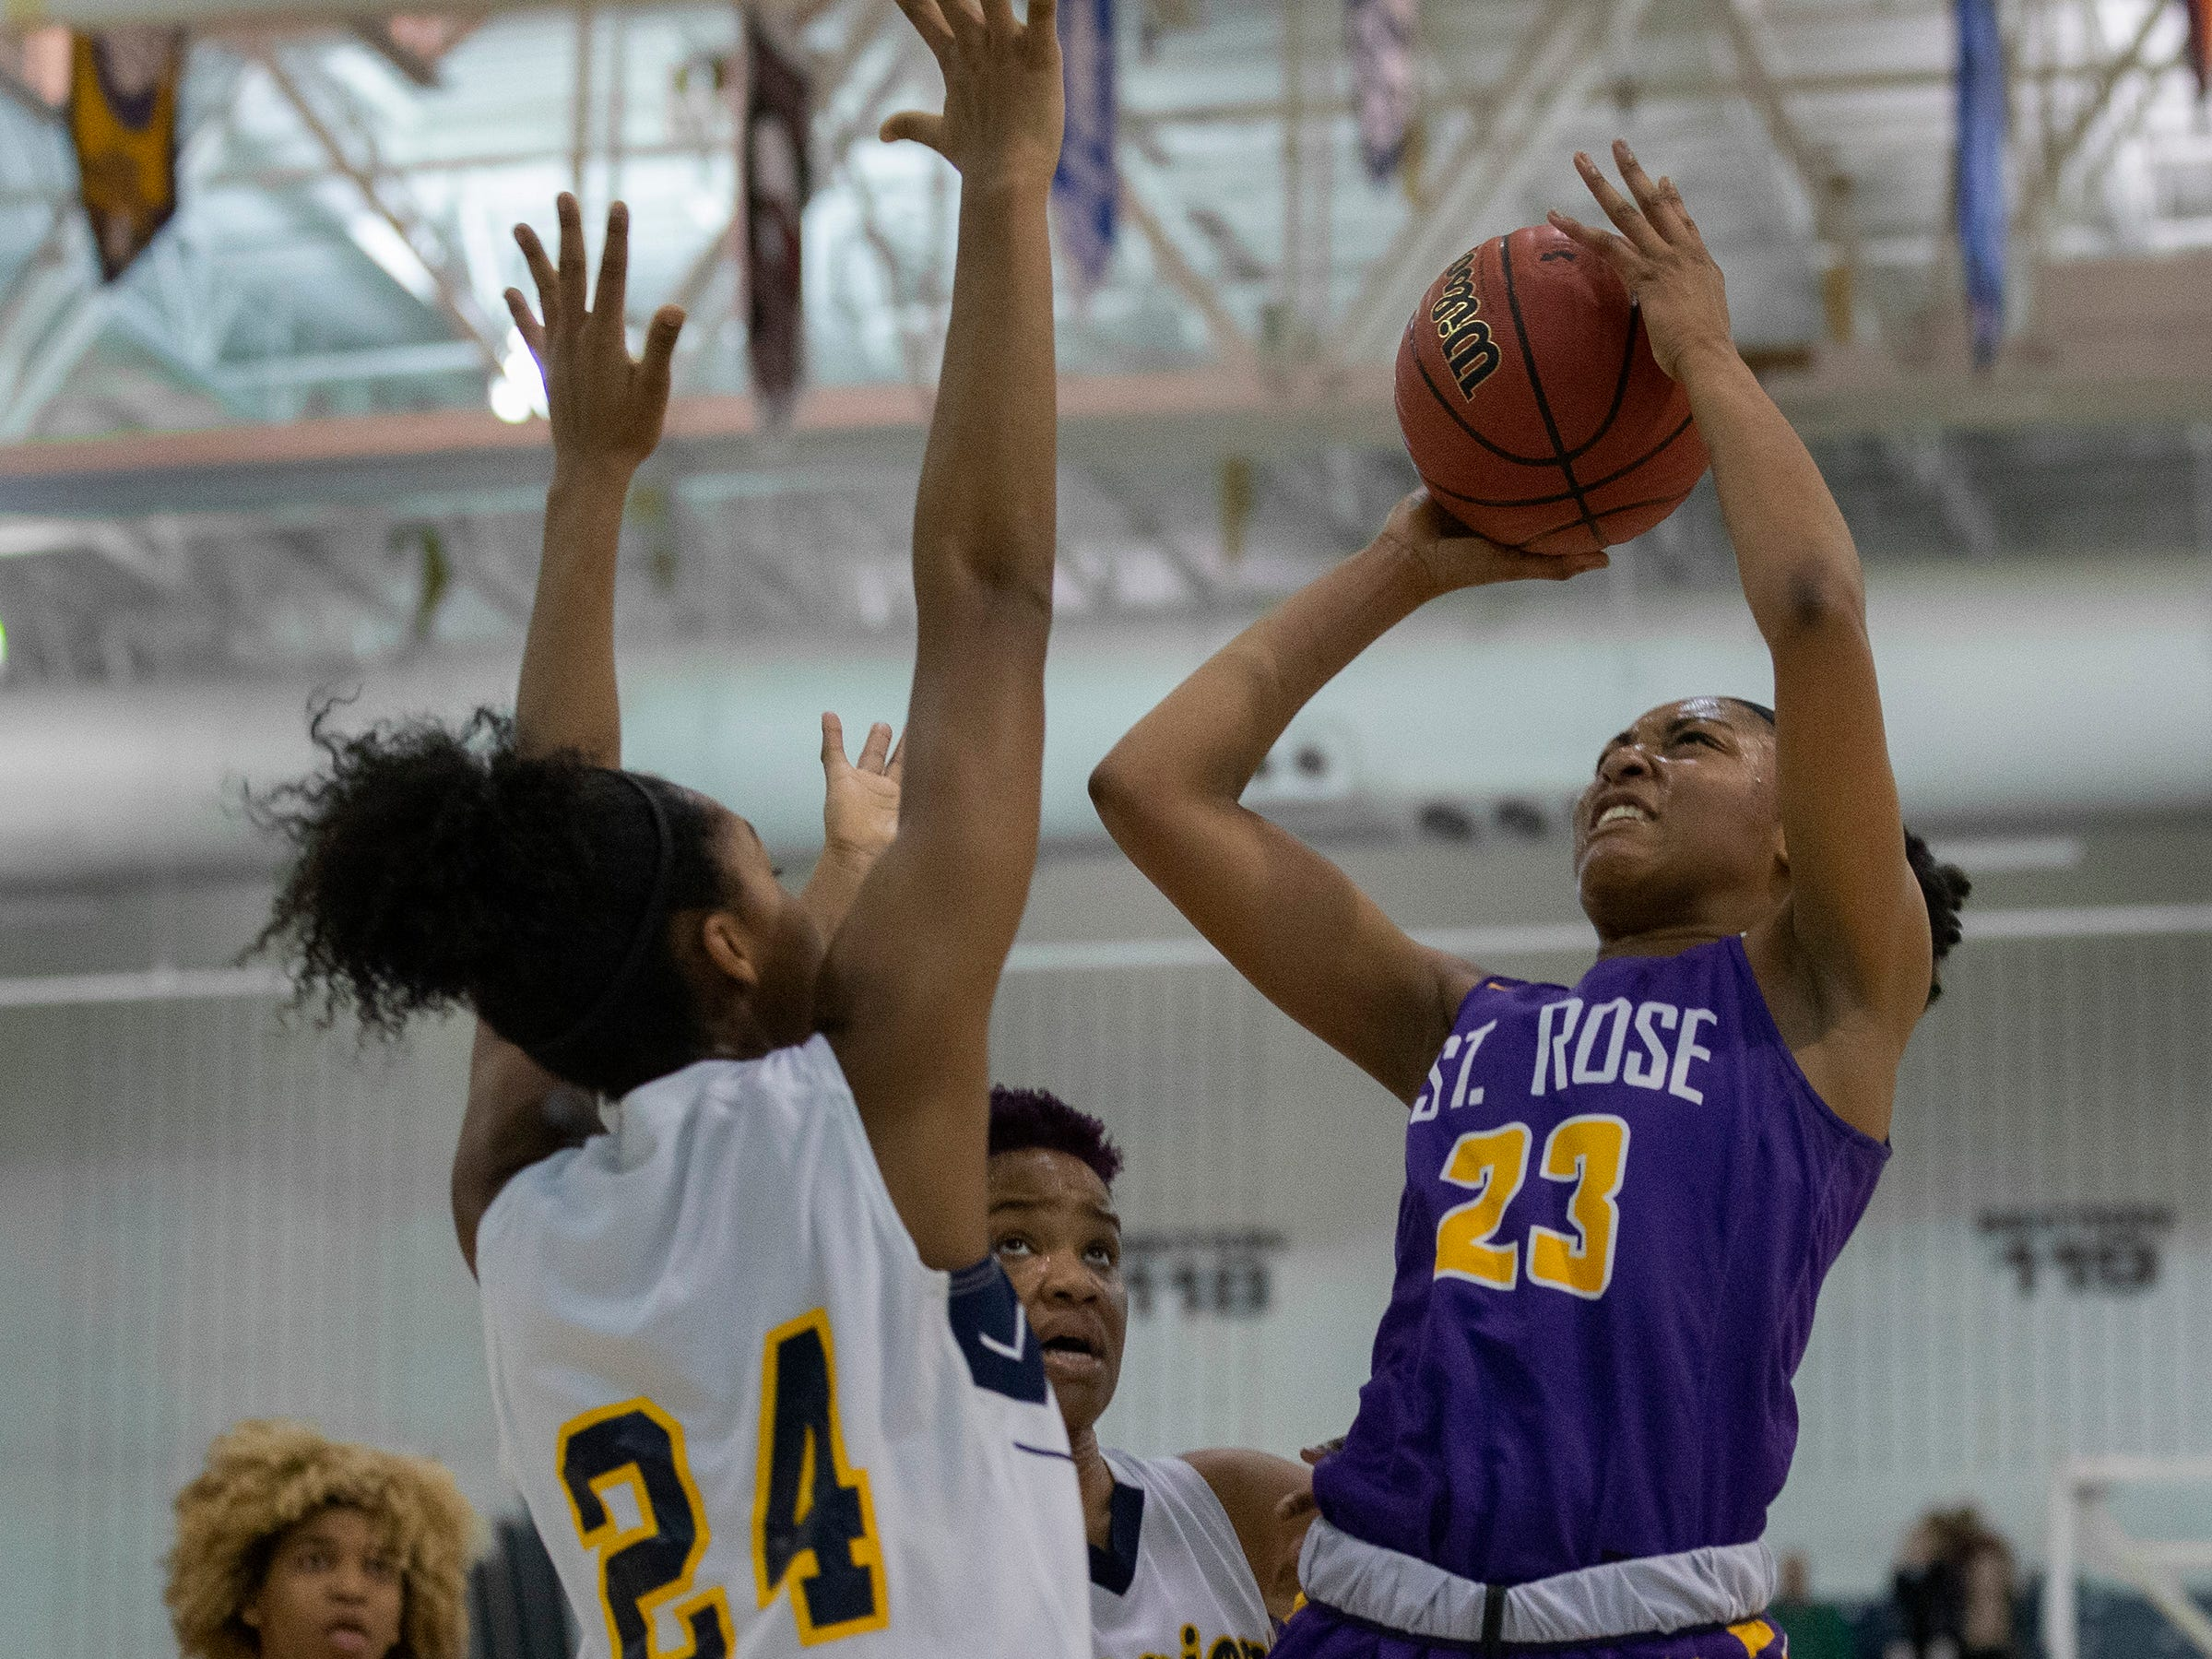 Makayla Andrews, St Rose goes up with shot againts Christina Midgette, Franklin. St Rose Girls Basketball vs Franklin High School in NJSIAA Tournament of Champions Semifinal in Toms River on March 14, 2019.